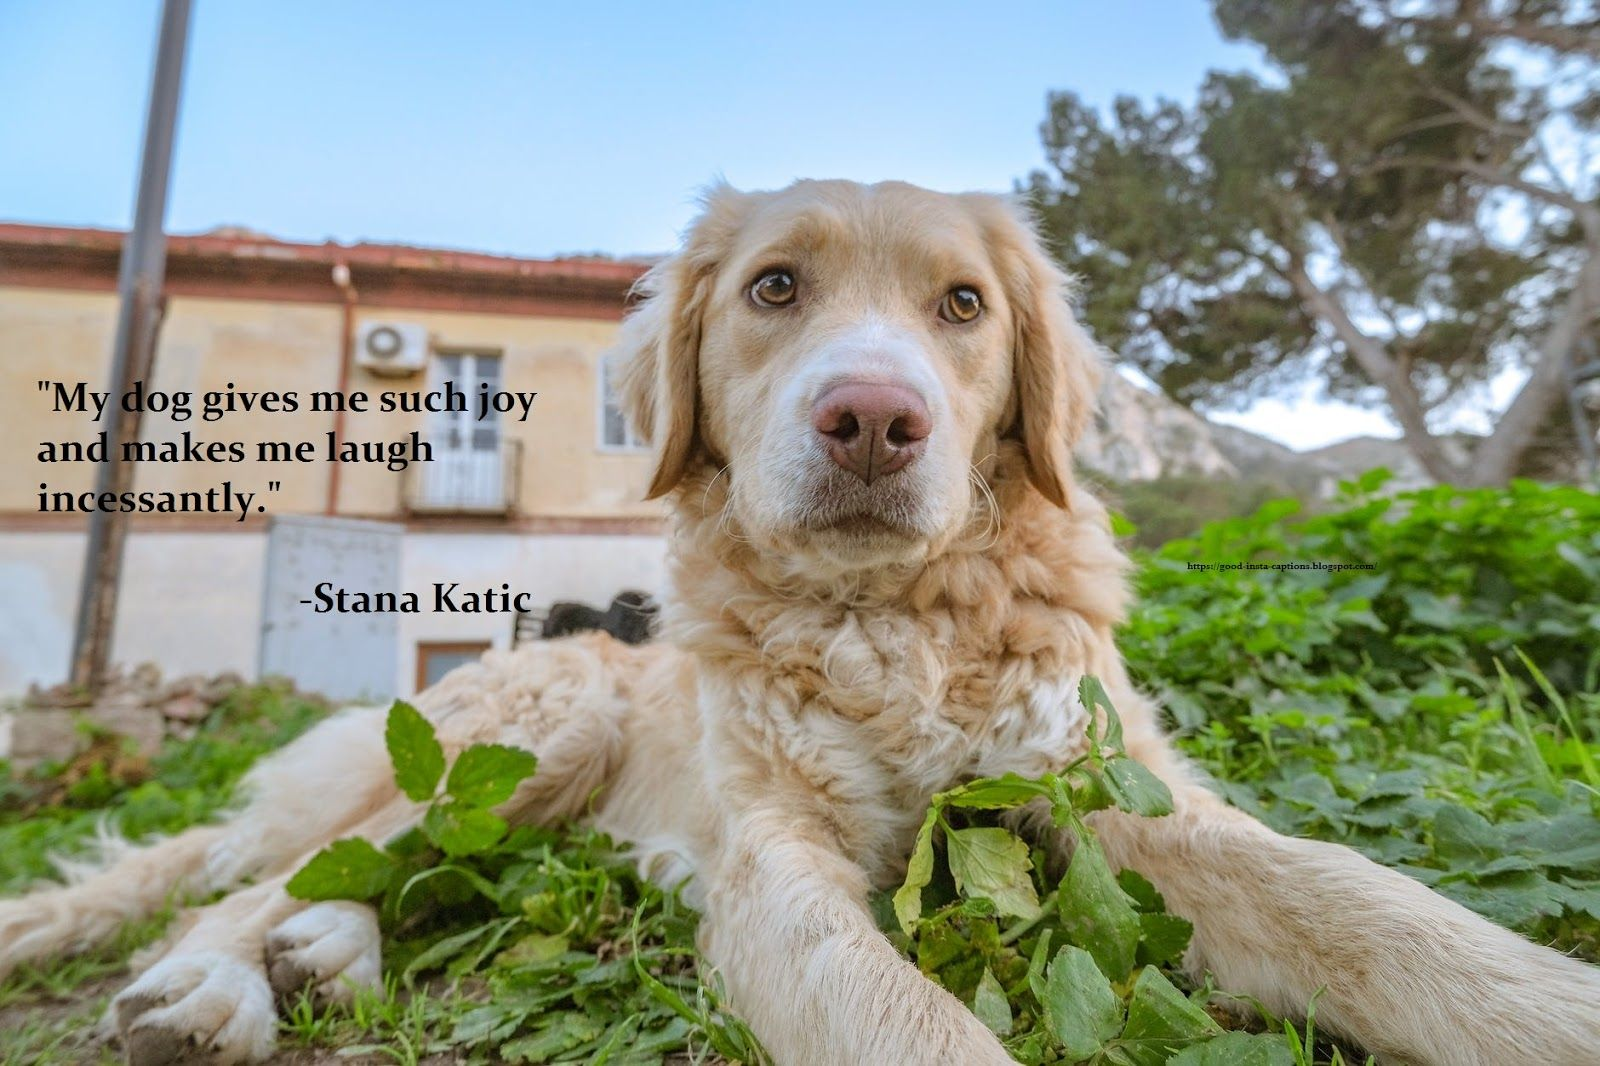 Funny Dog Quotes By Stana Katic Golden Retriever Beautiful Dogs Photos Dog Quotes Funny